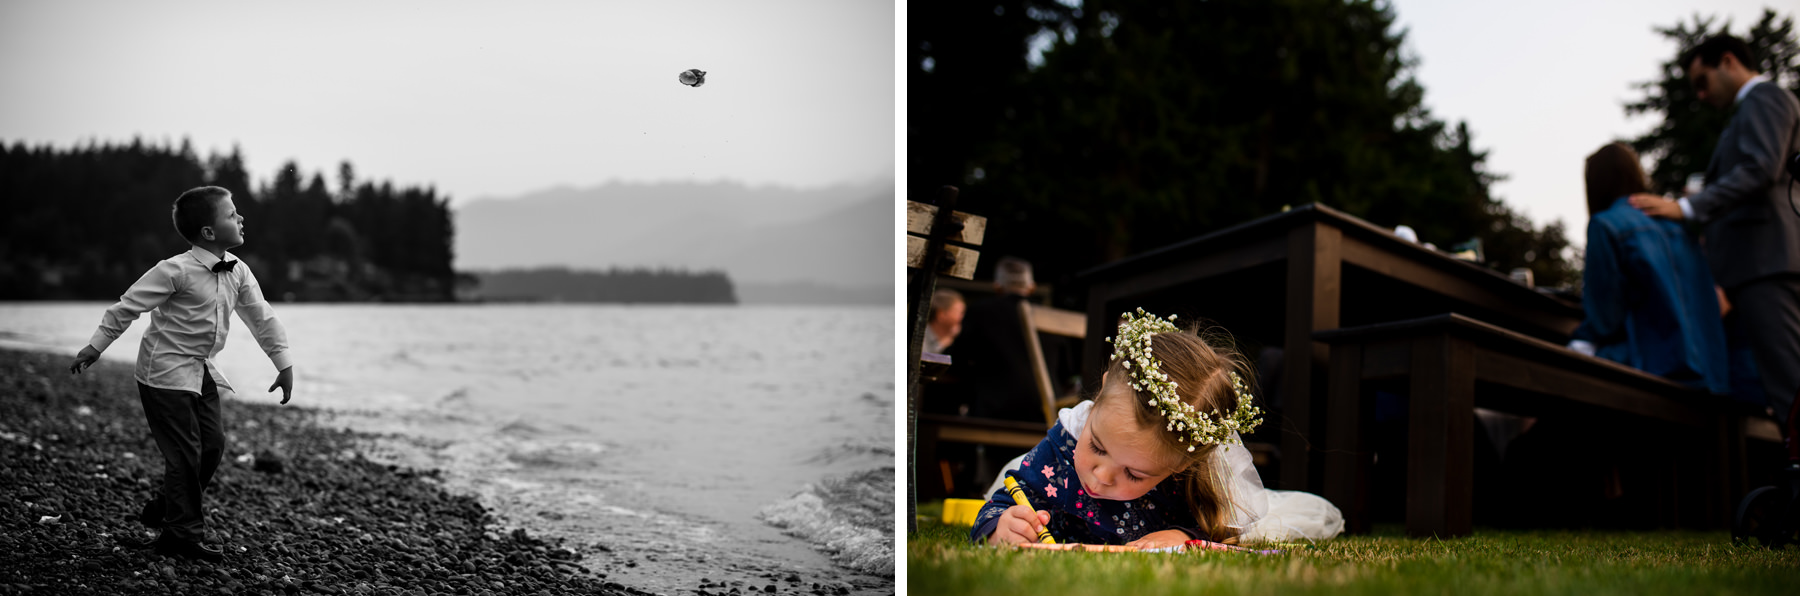 kid throwing shell into hood canal